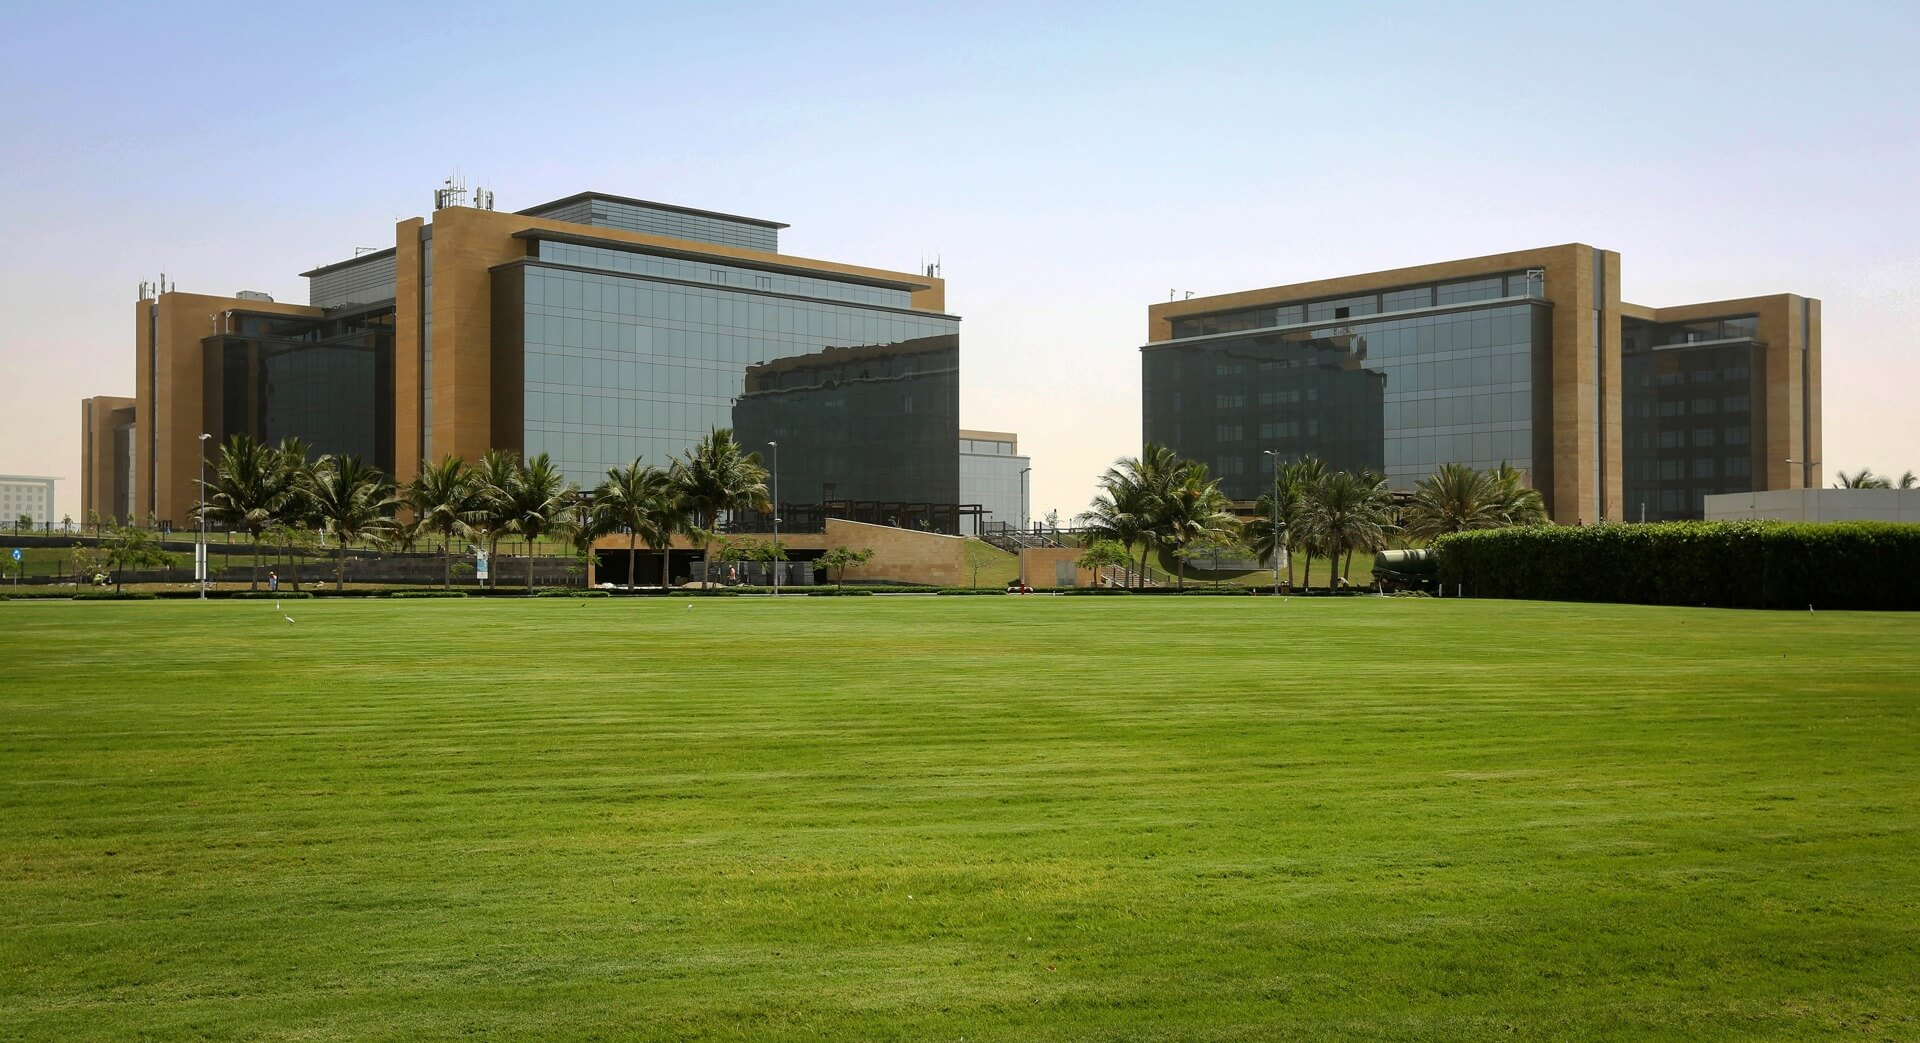 Bayviwes business park green space- KAEC